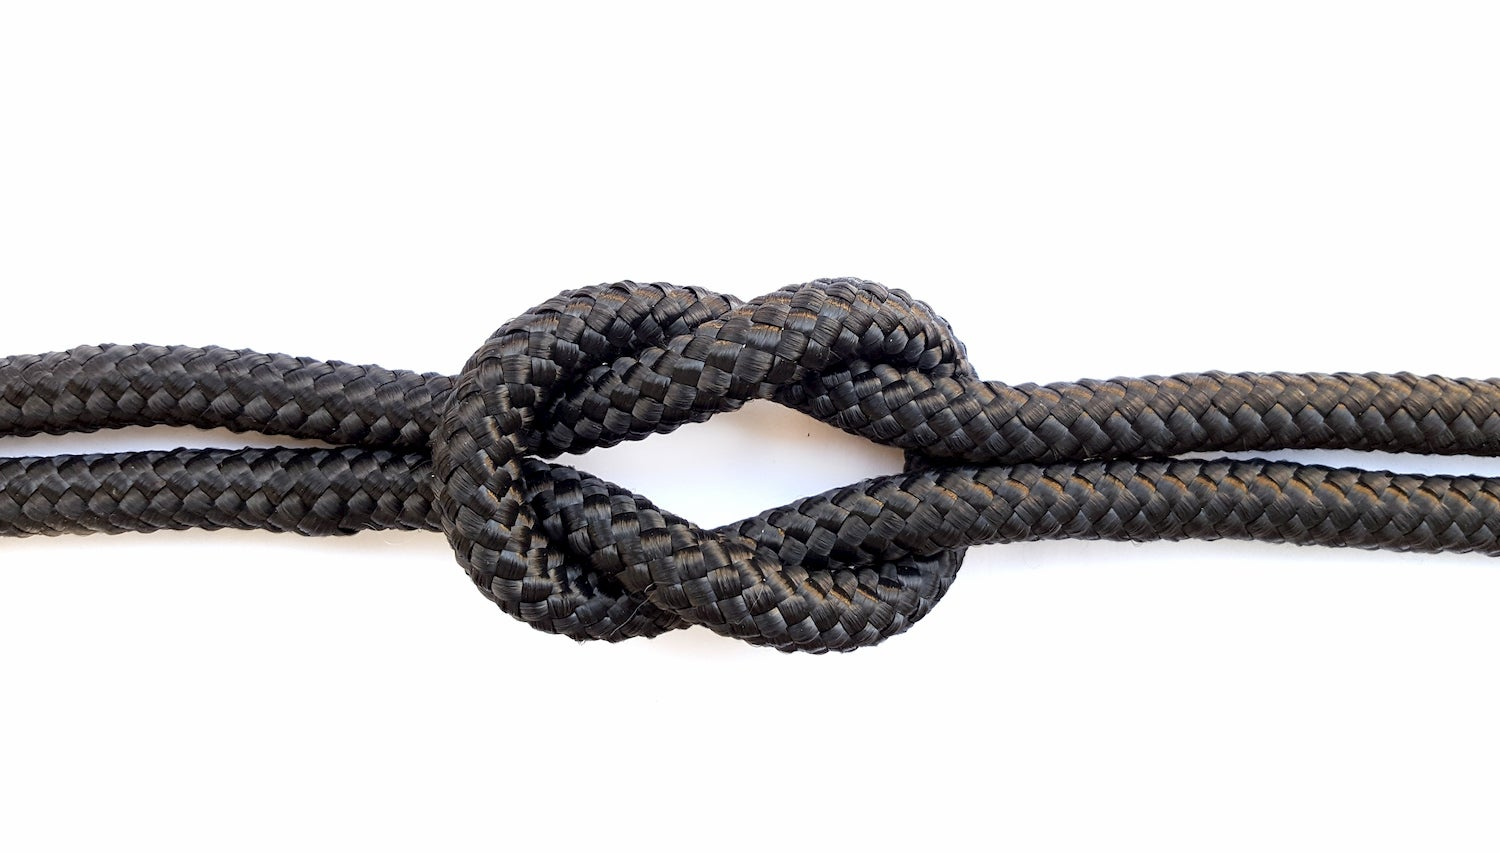 Black rope tied into a square knot.